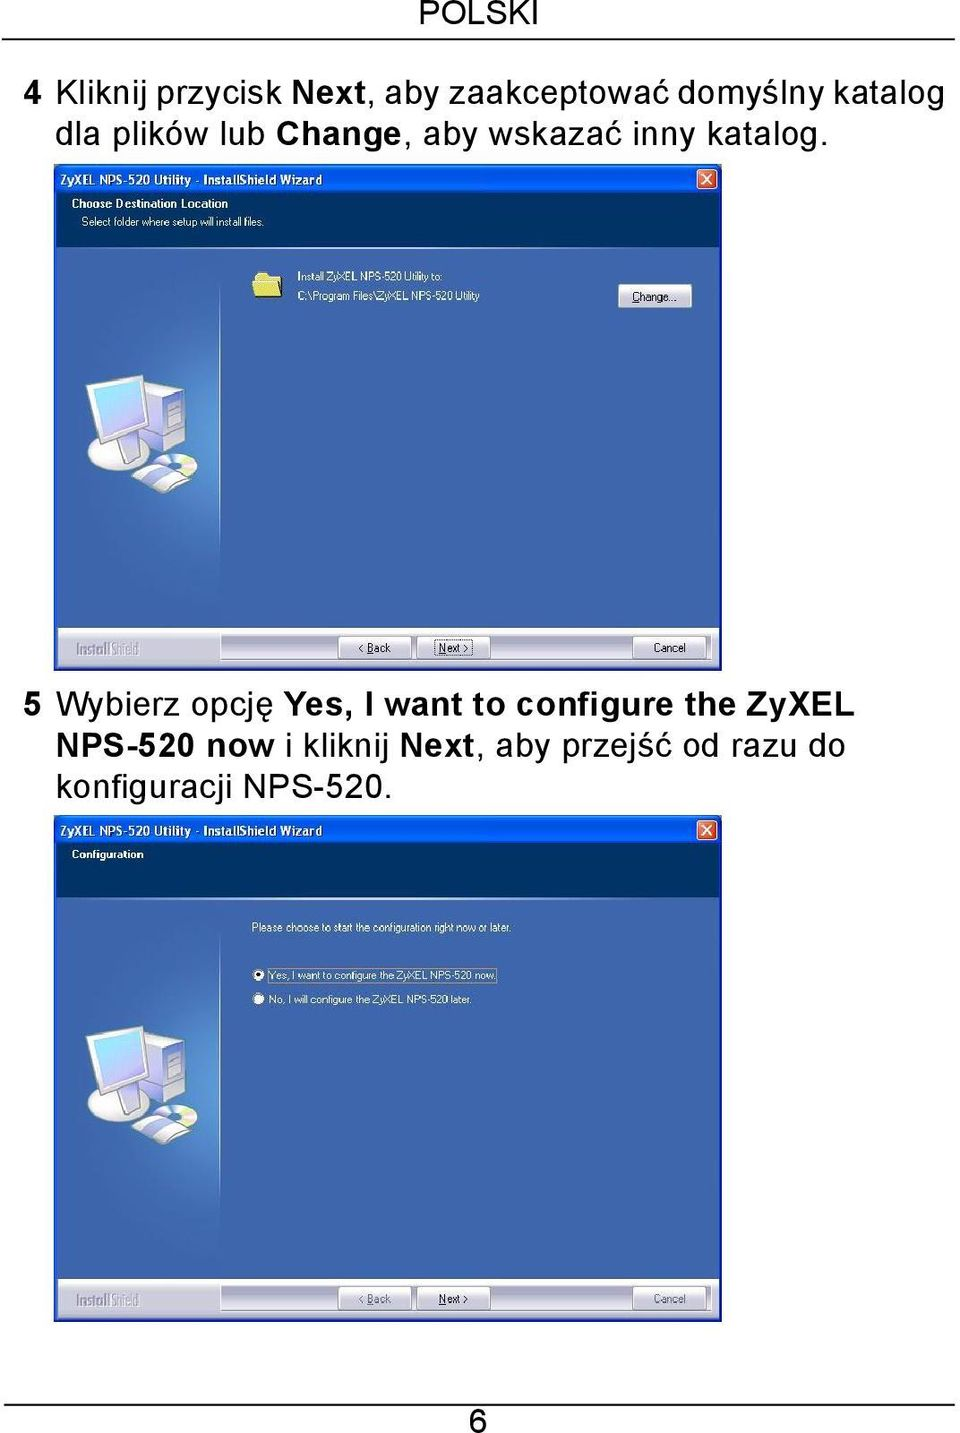 5 Wybierz opcję Yes, I want to configure the ZyXEL NPS-520